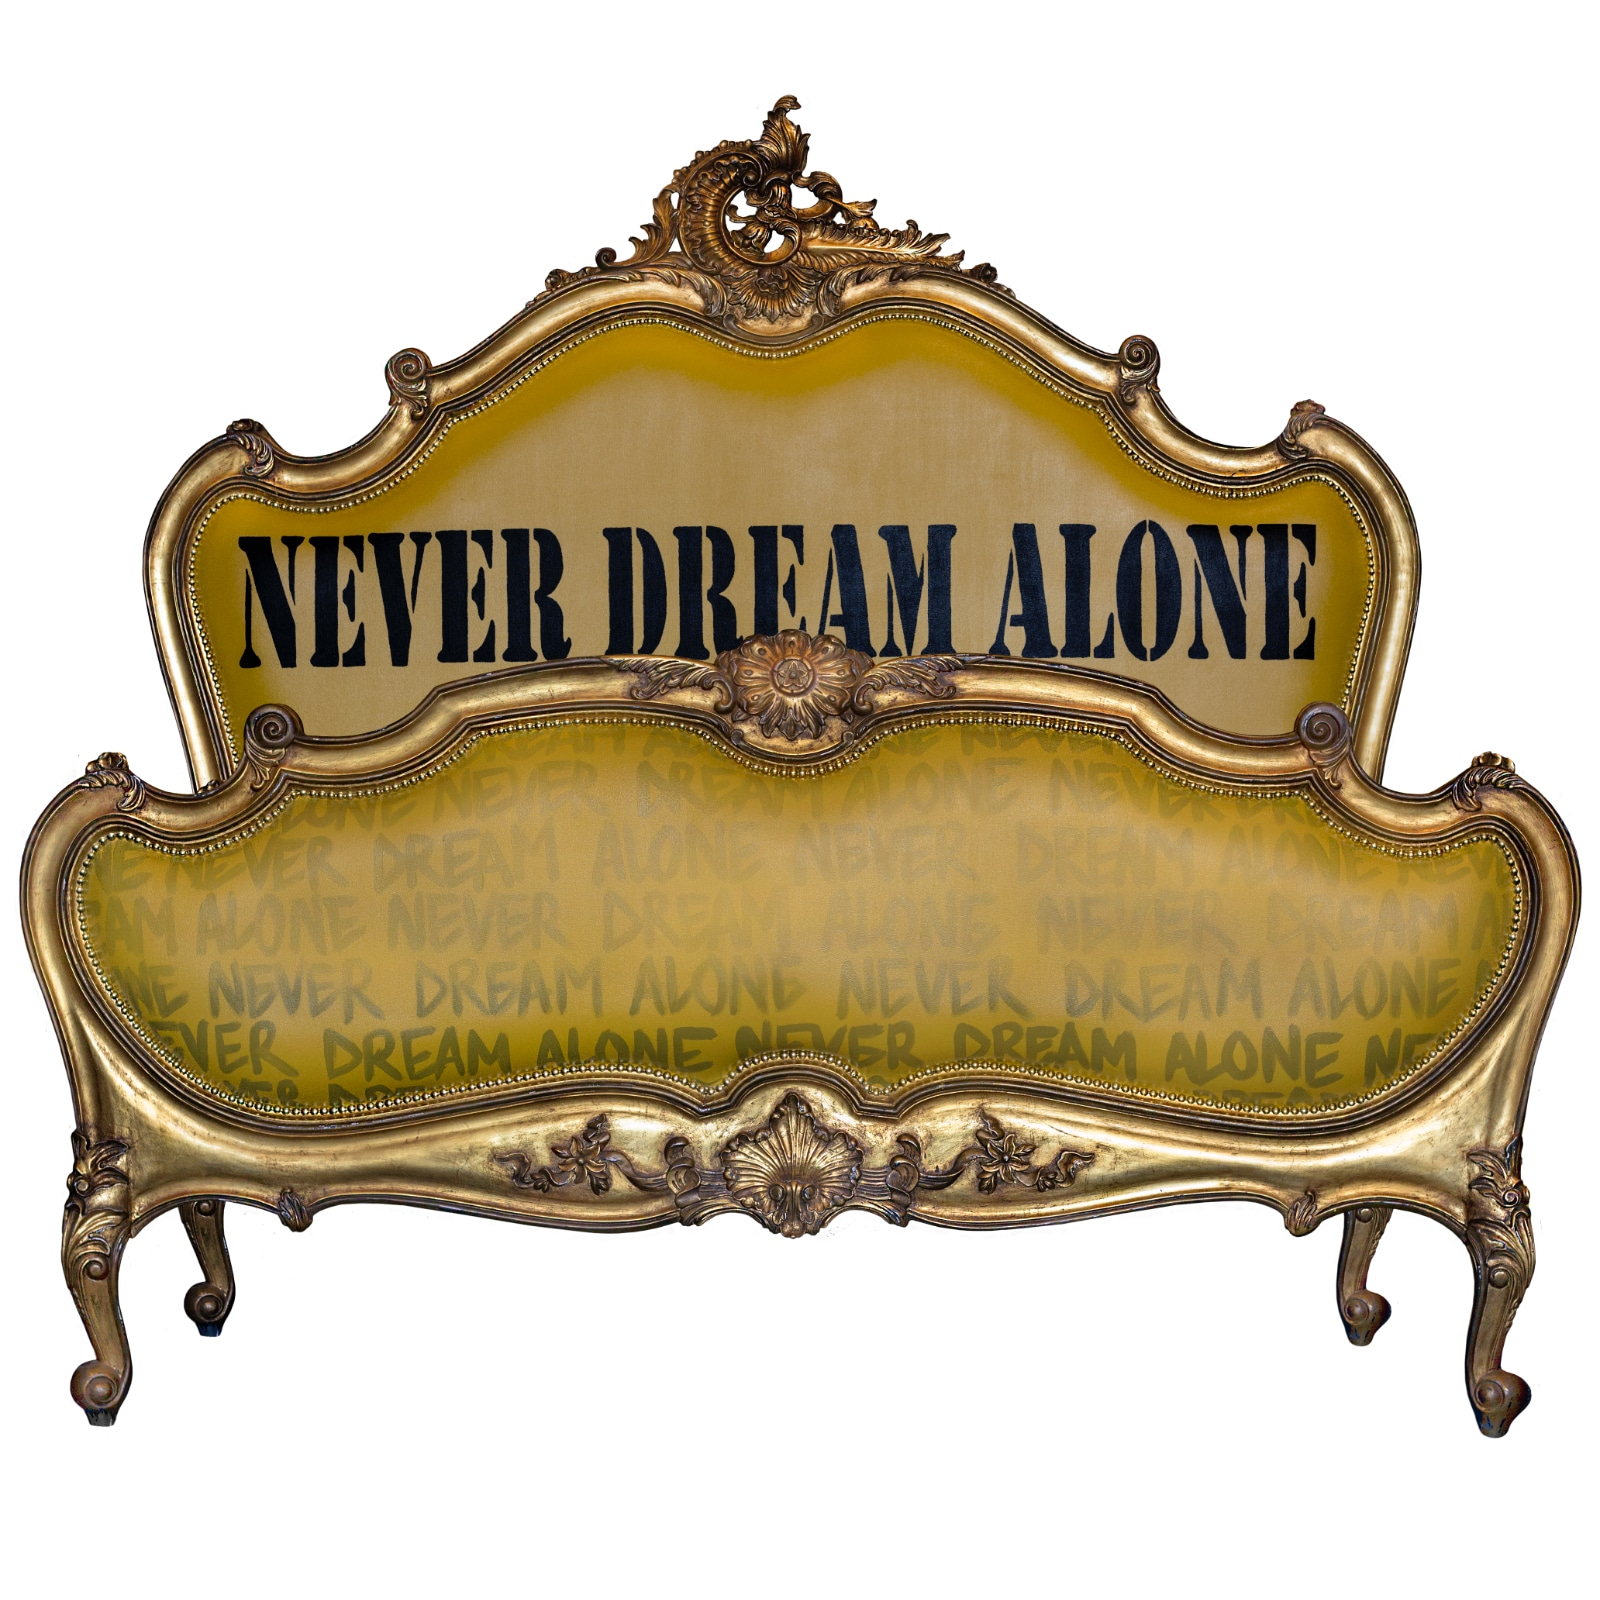 NEVER DREAM ALONE